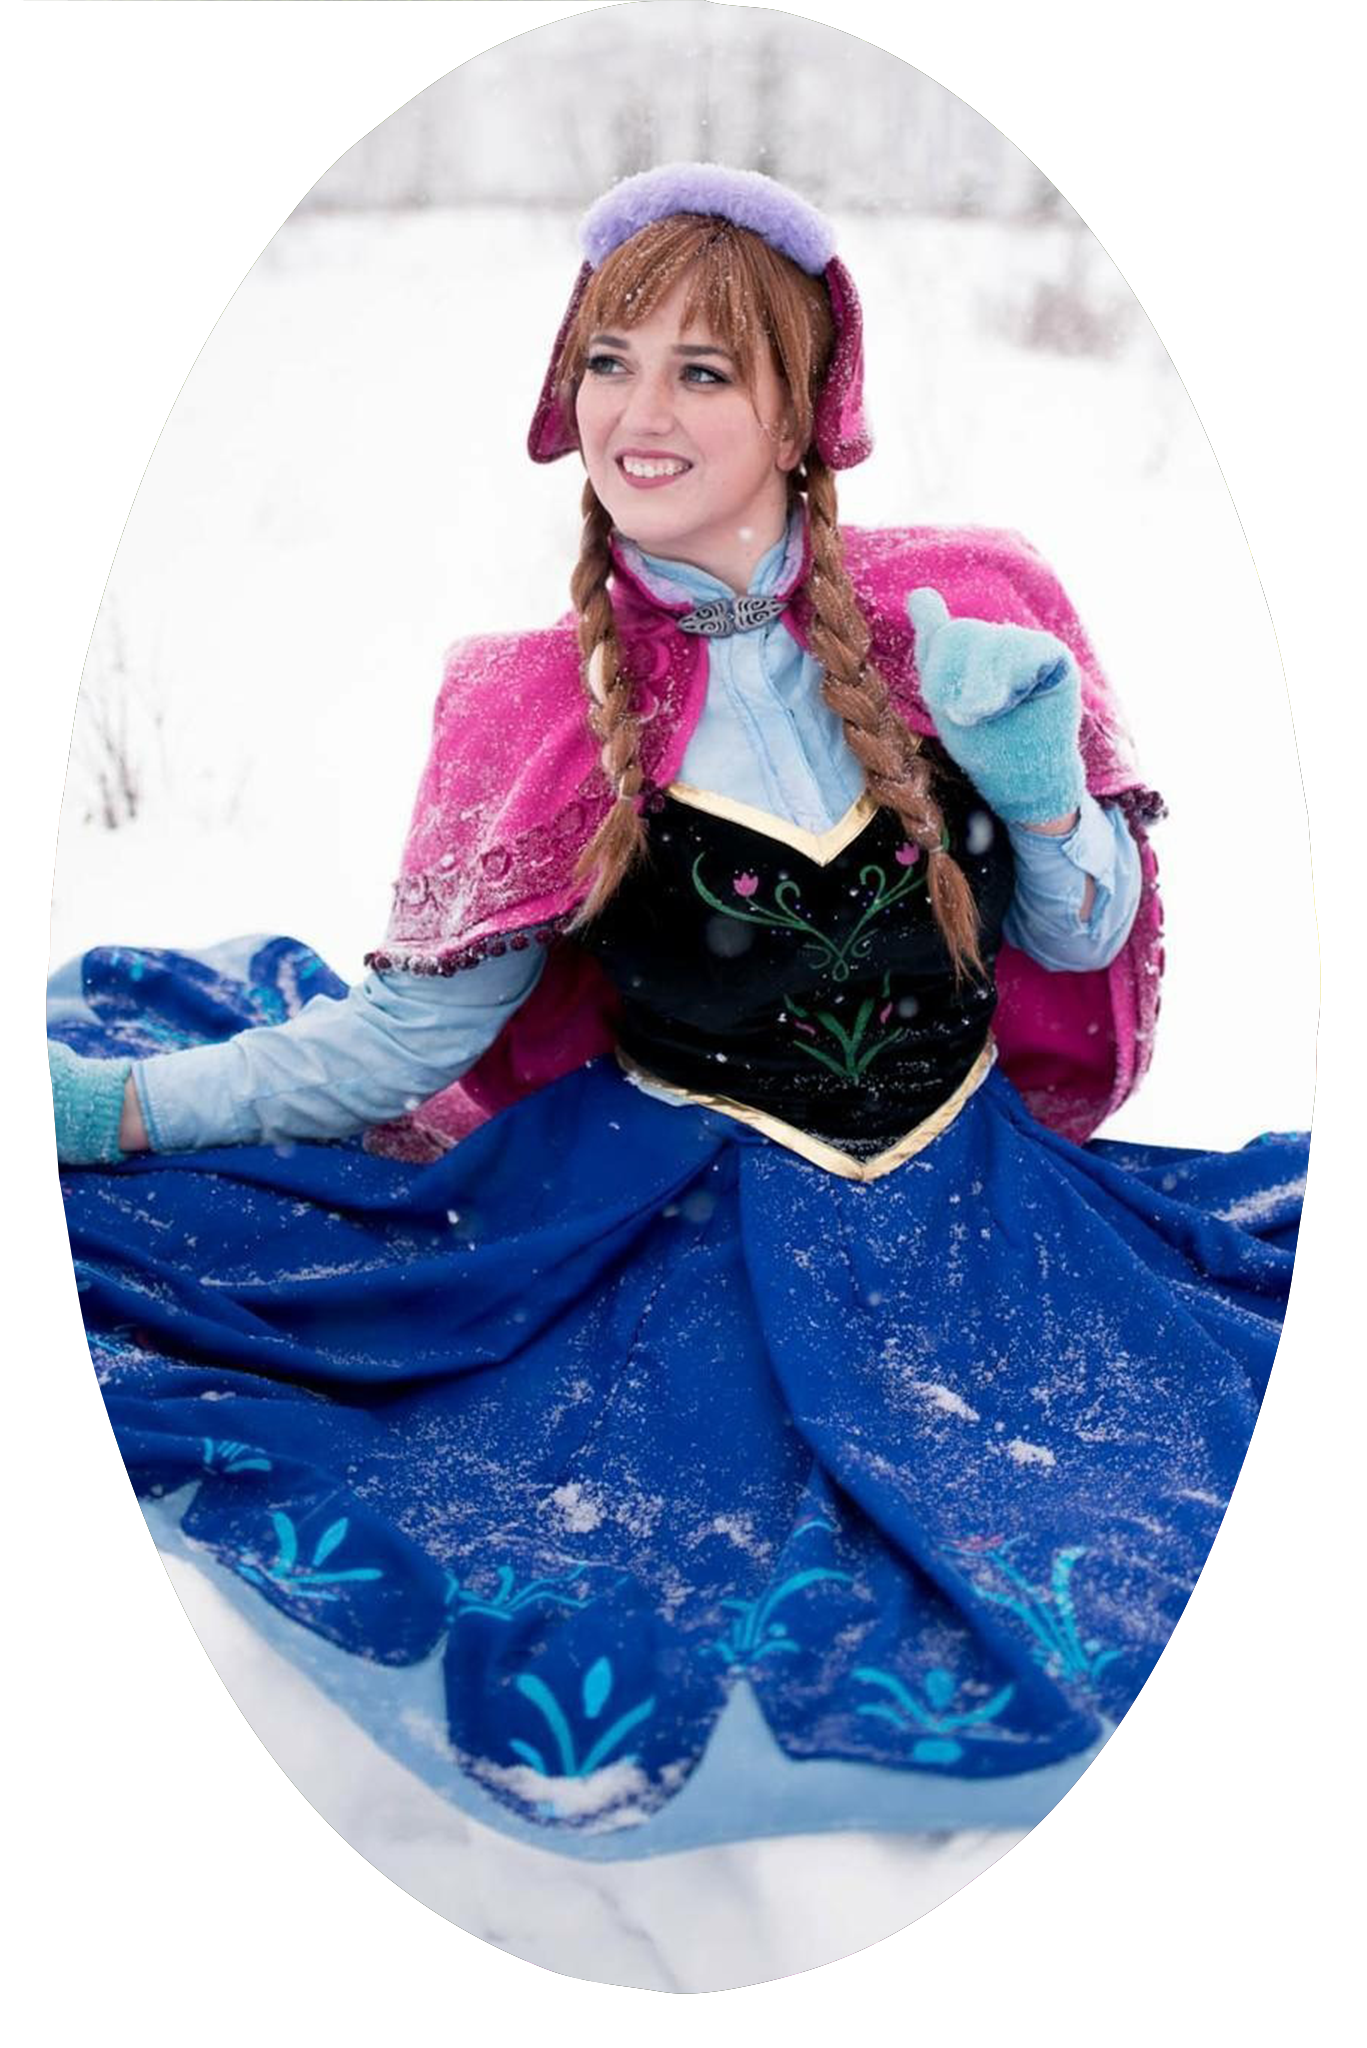 ppbm-princess-anna-winter.jpg